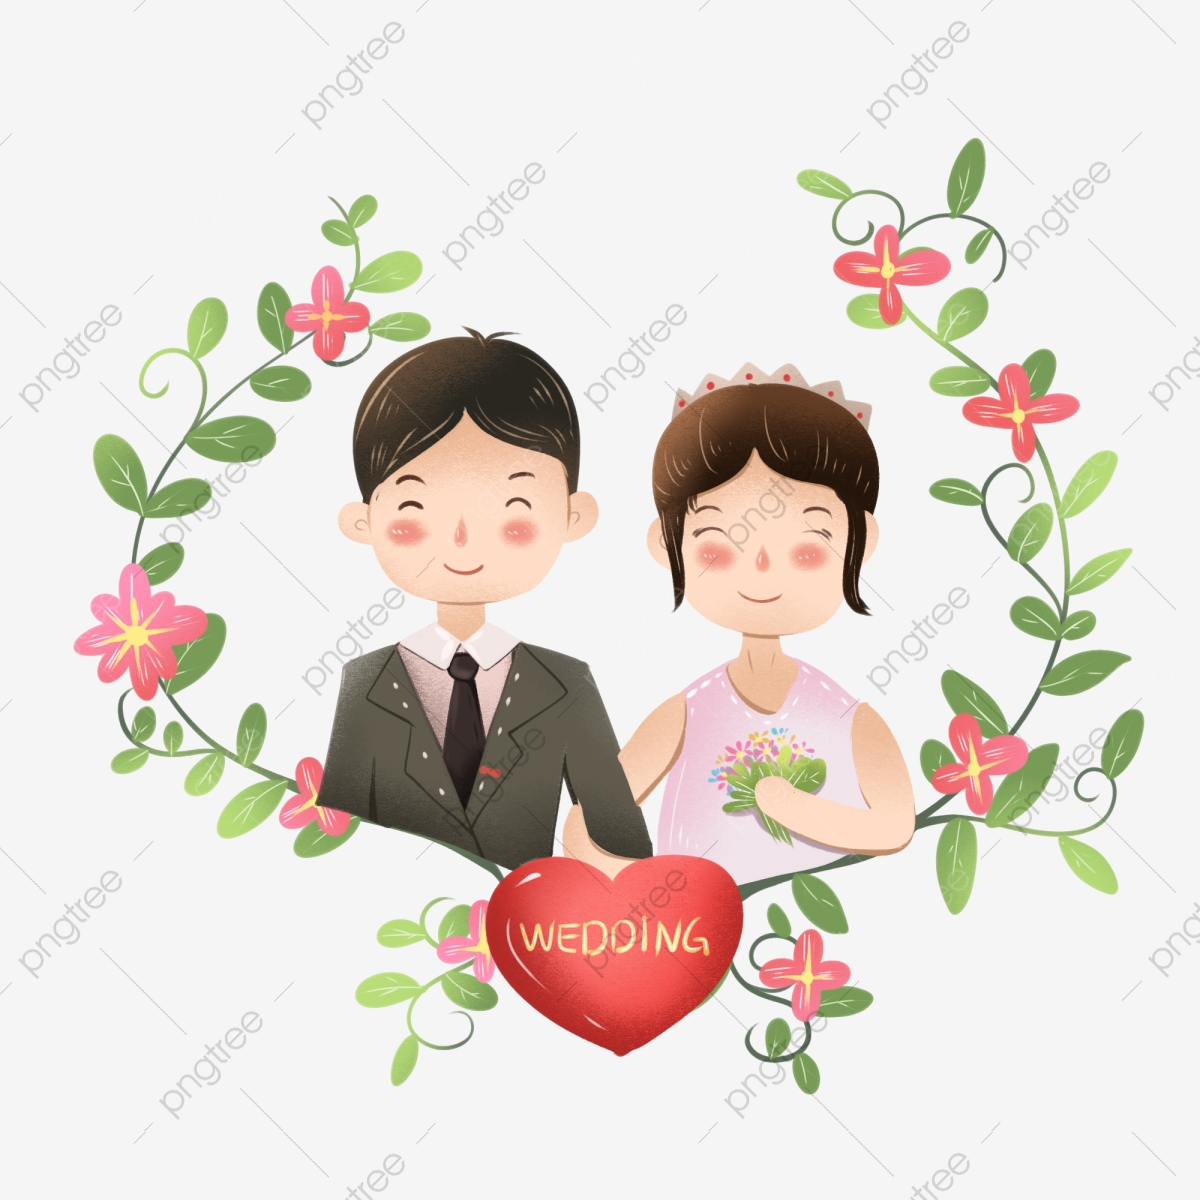 Wedding Invitation Couple Marry Invitation Invitation Card Png Transparent Clipart Image And Psd File For Free Download